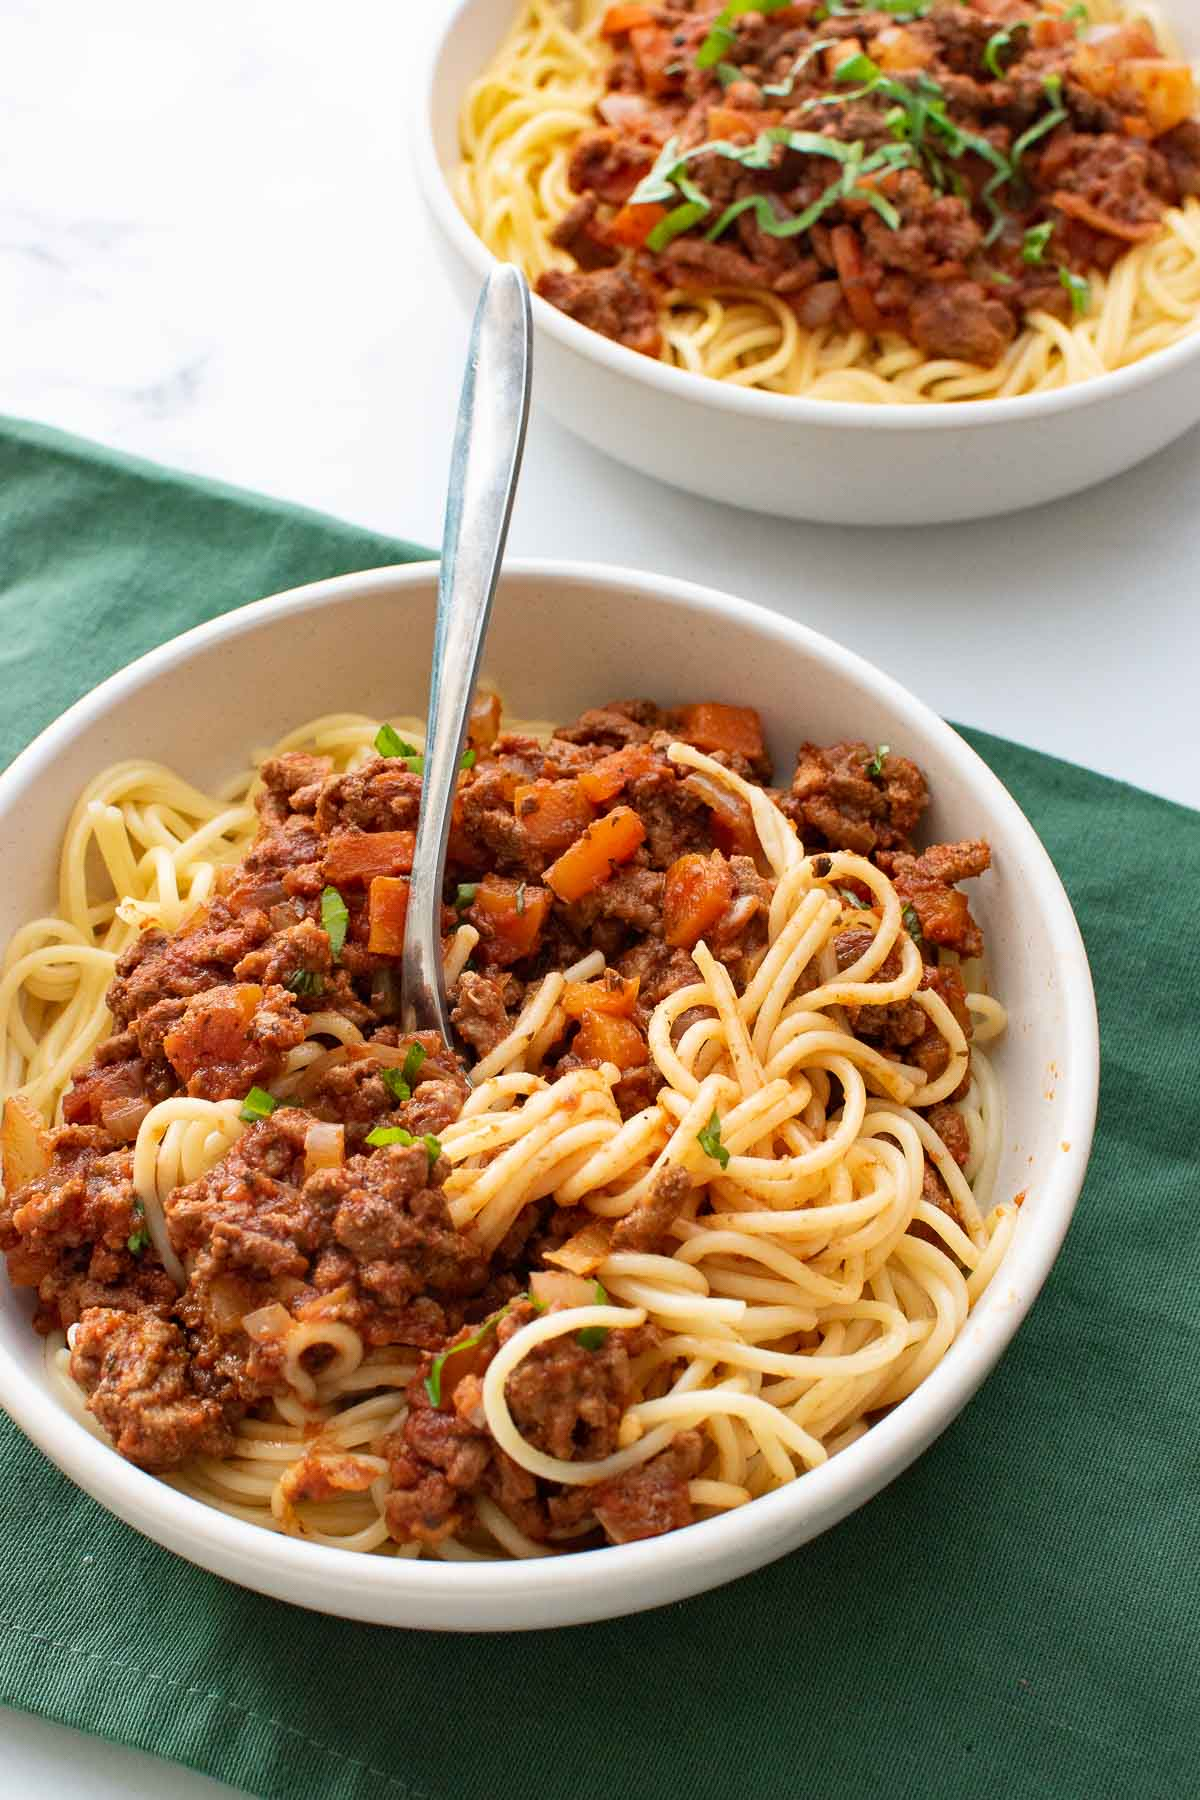 A bowl of spaghetti bolognese, with a fork.